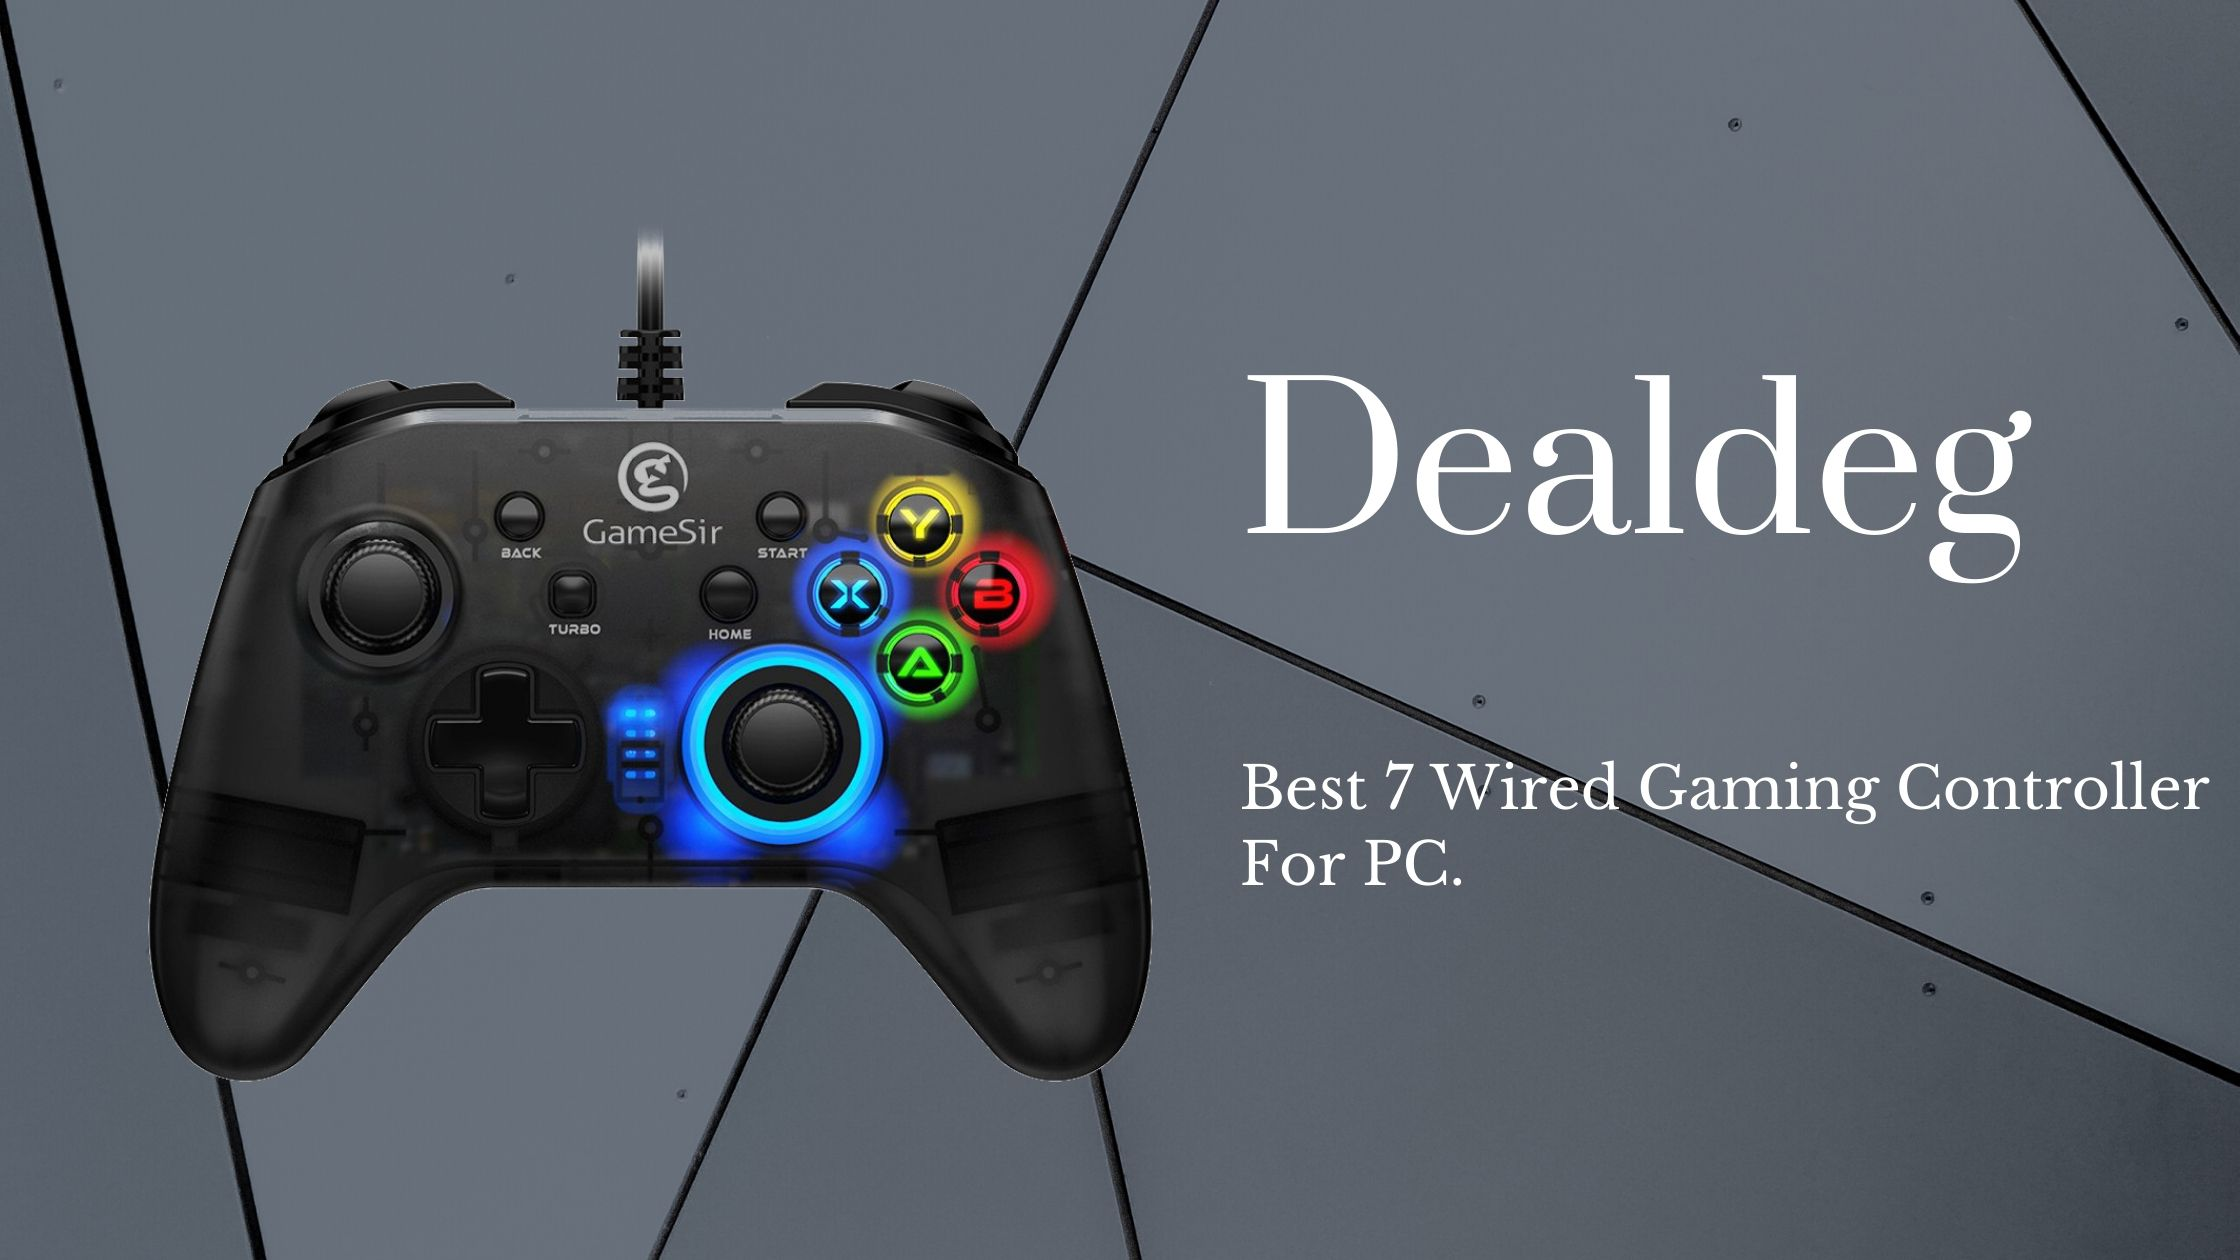 Best 7 Wired Gaming Controller For PC.